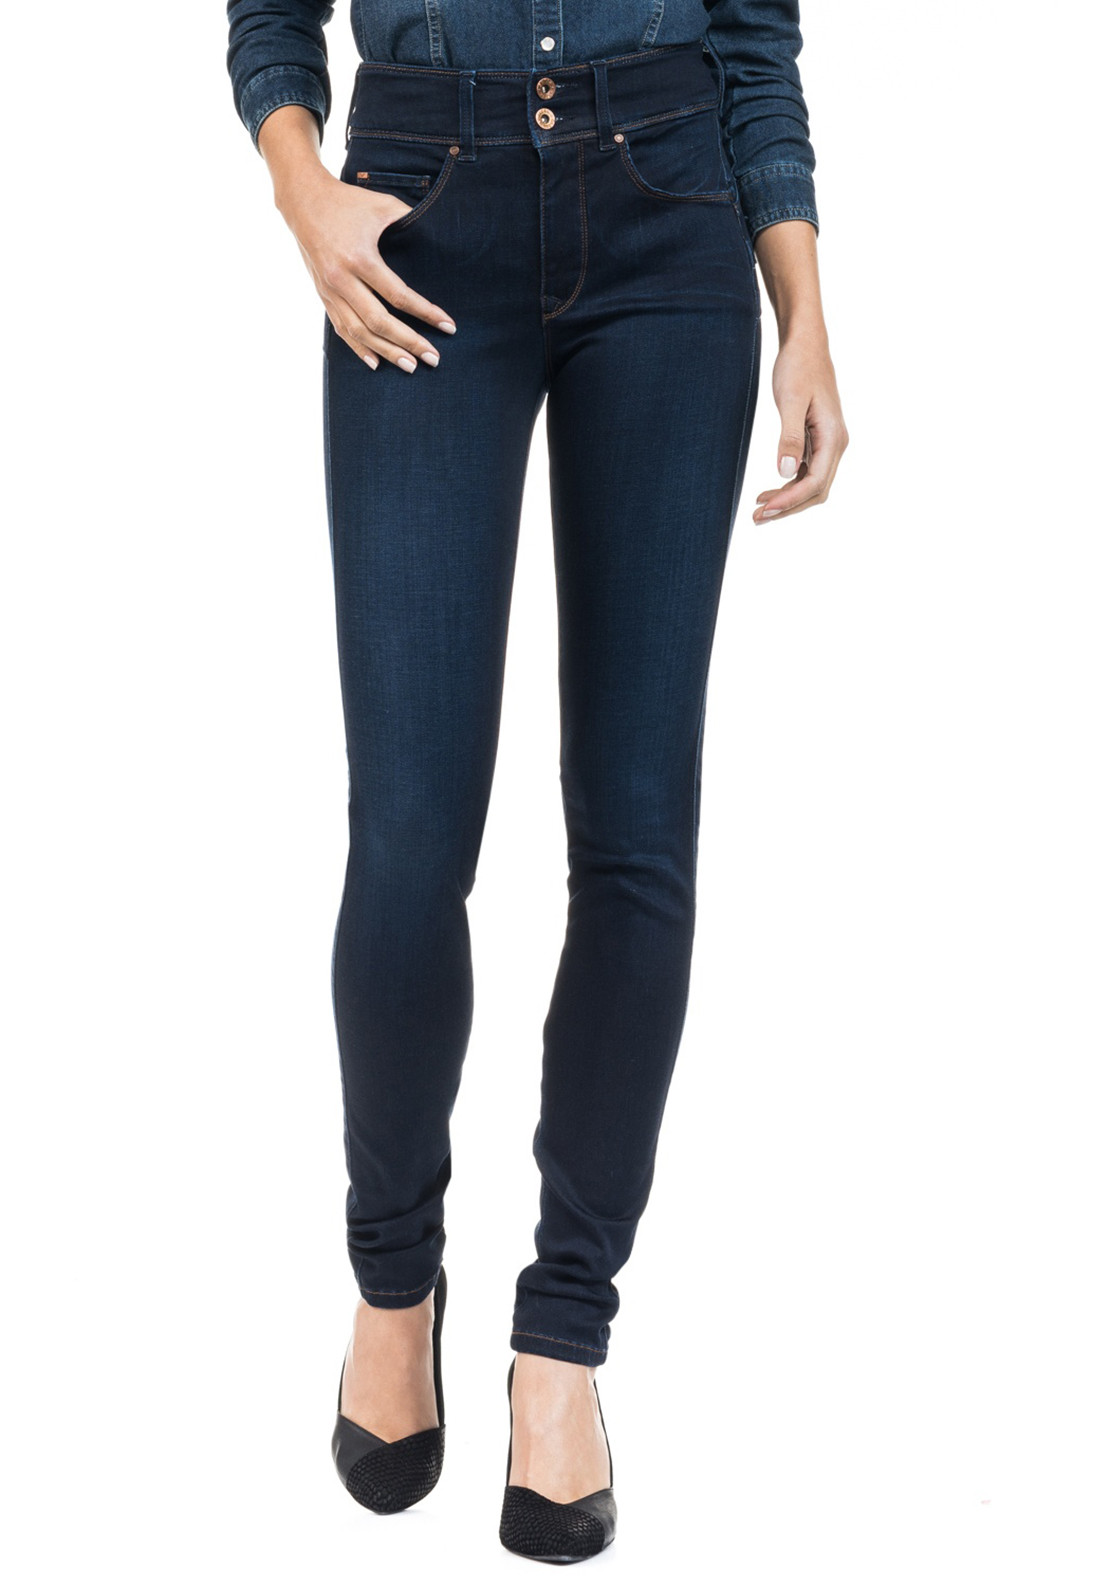 dc380e3ed2ffb Salsa Secret Soft Touch Push in Skinny Jeans, Dark Blue Denim. Be the first  to review this product